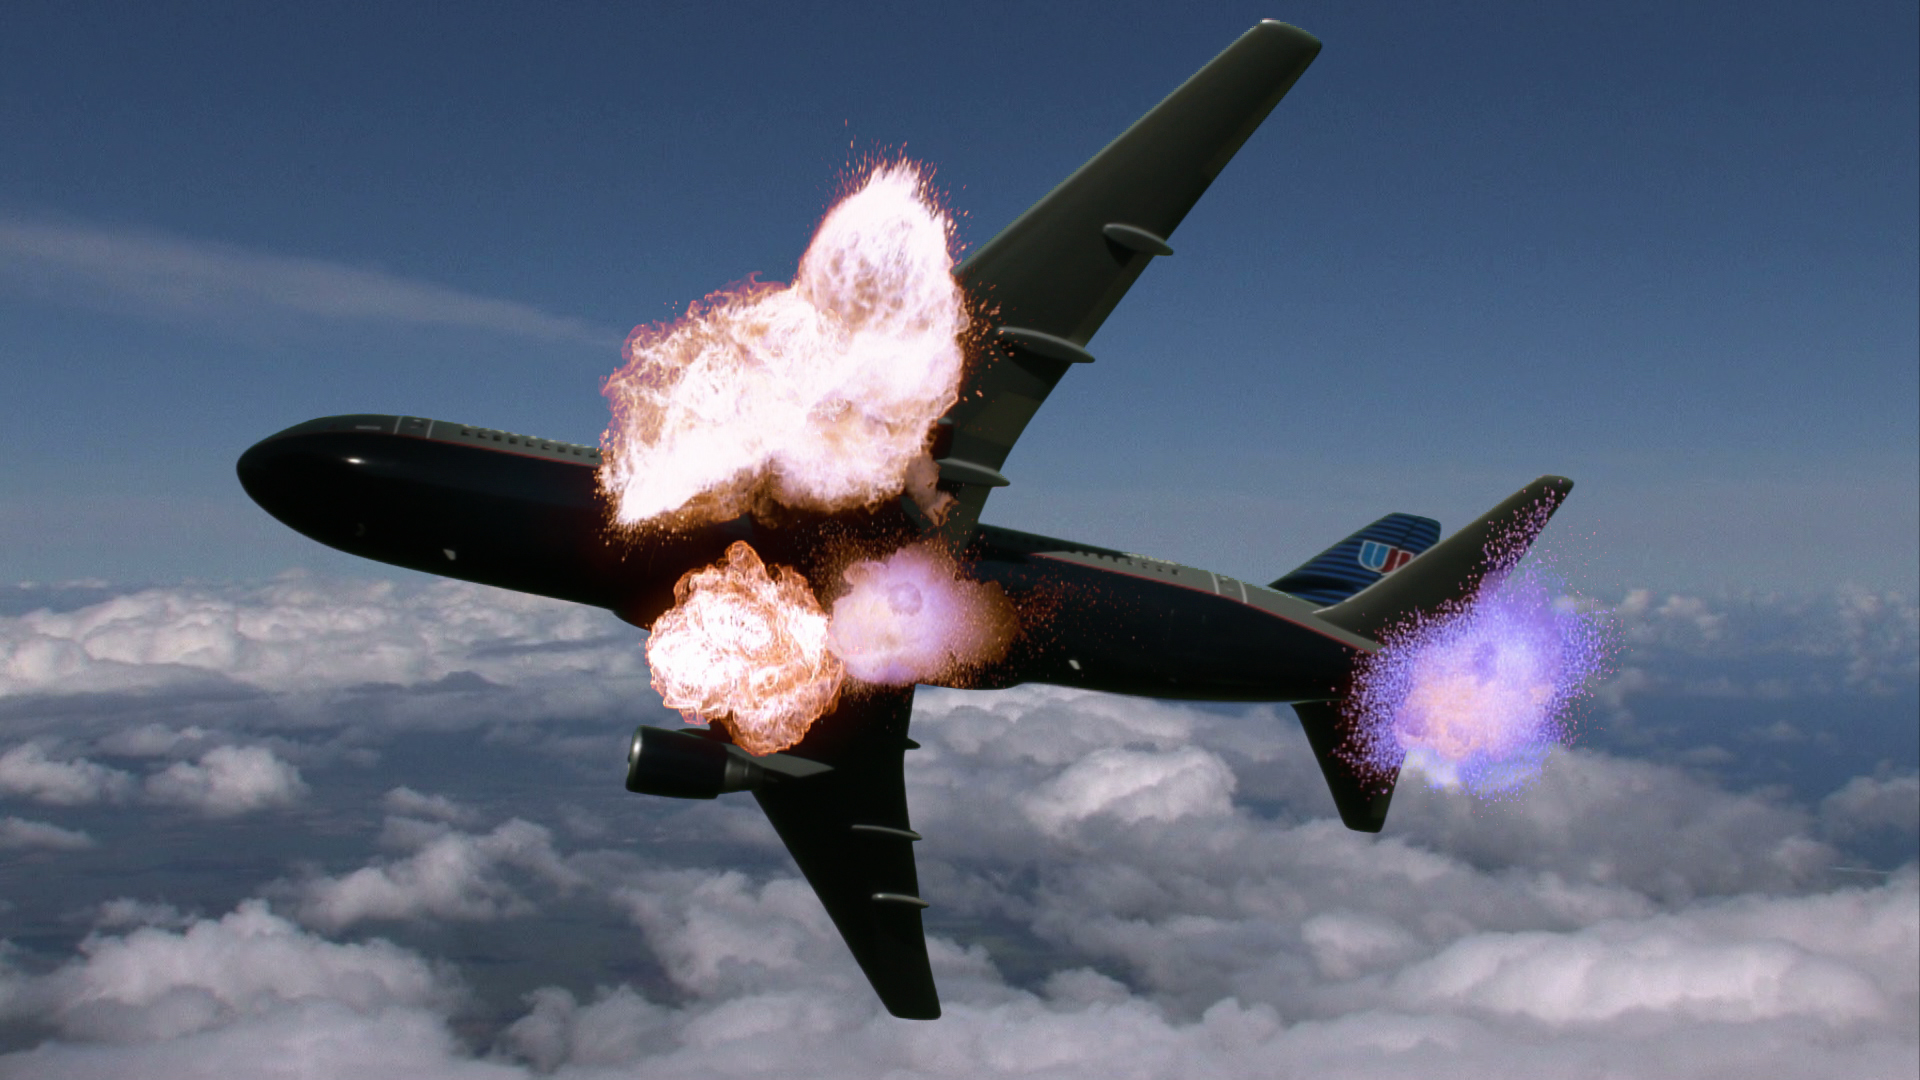 Composite Airliner Miniature Explosion